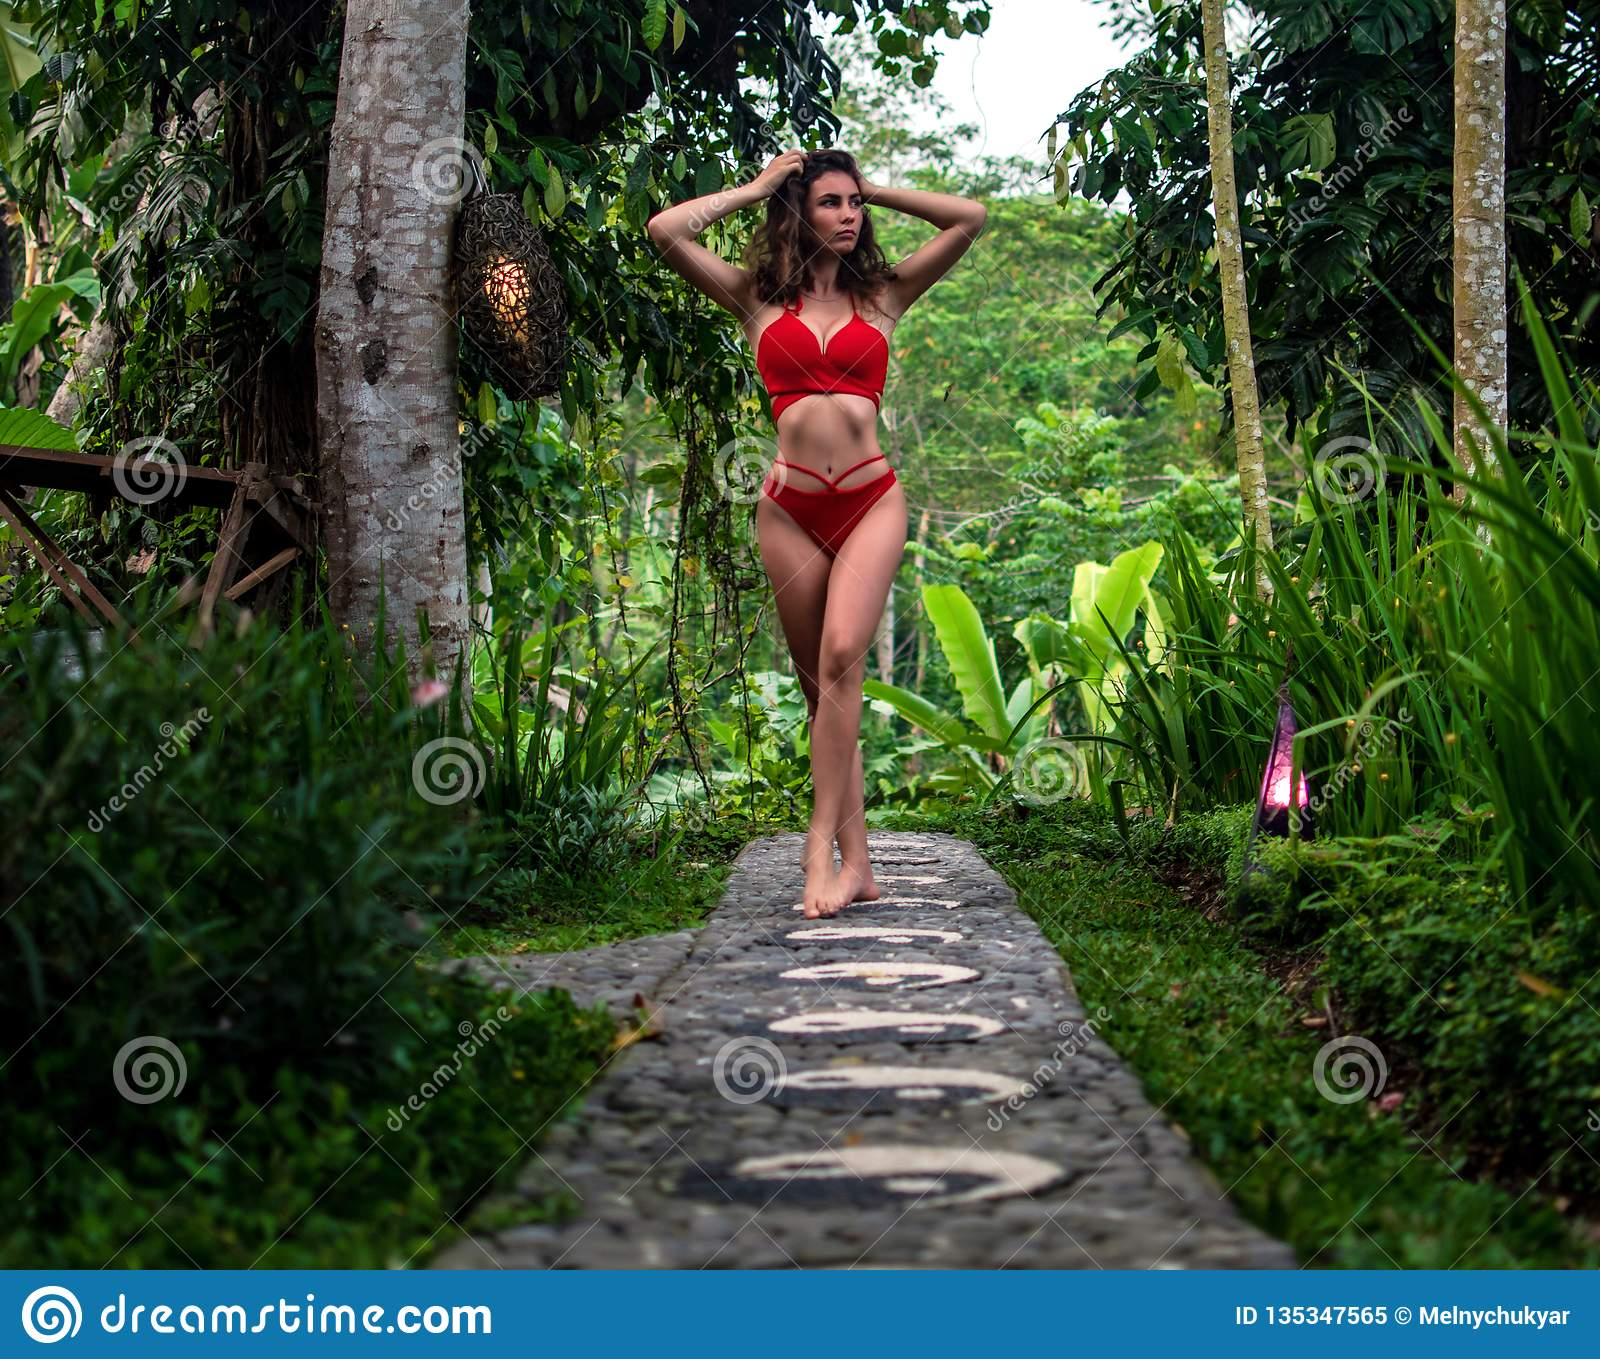 Beautiful girl in red swimsuit posing in tropical location with green trees. Young sports model in bikini with perfect